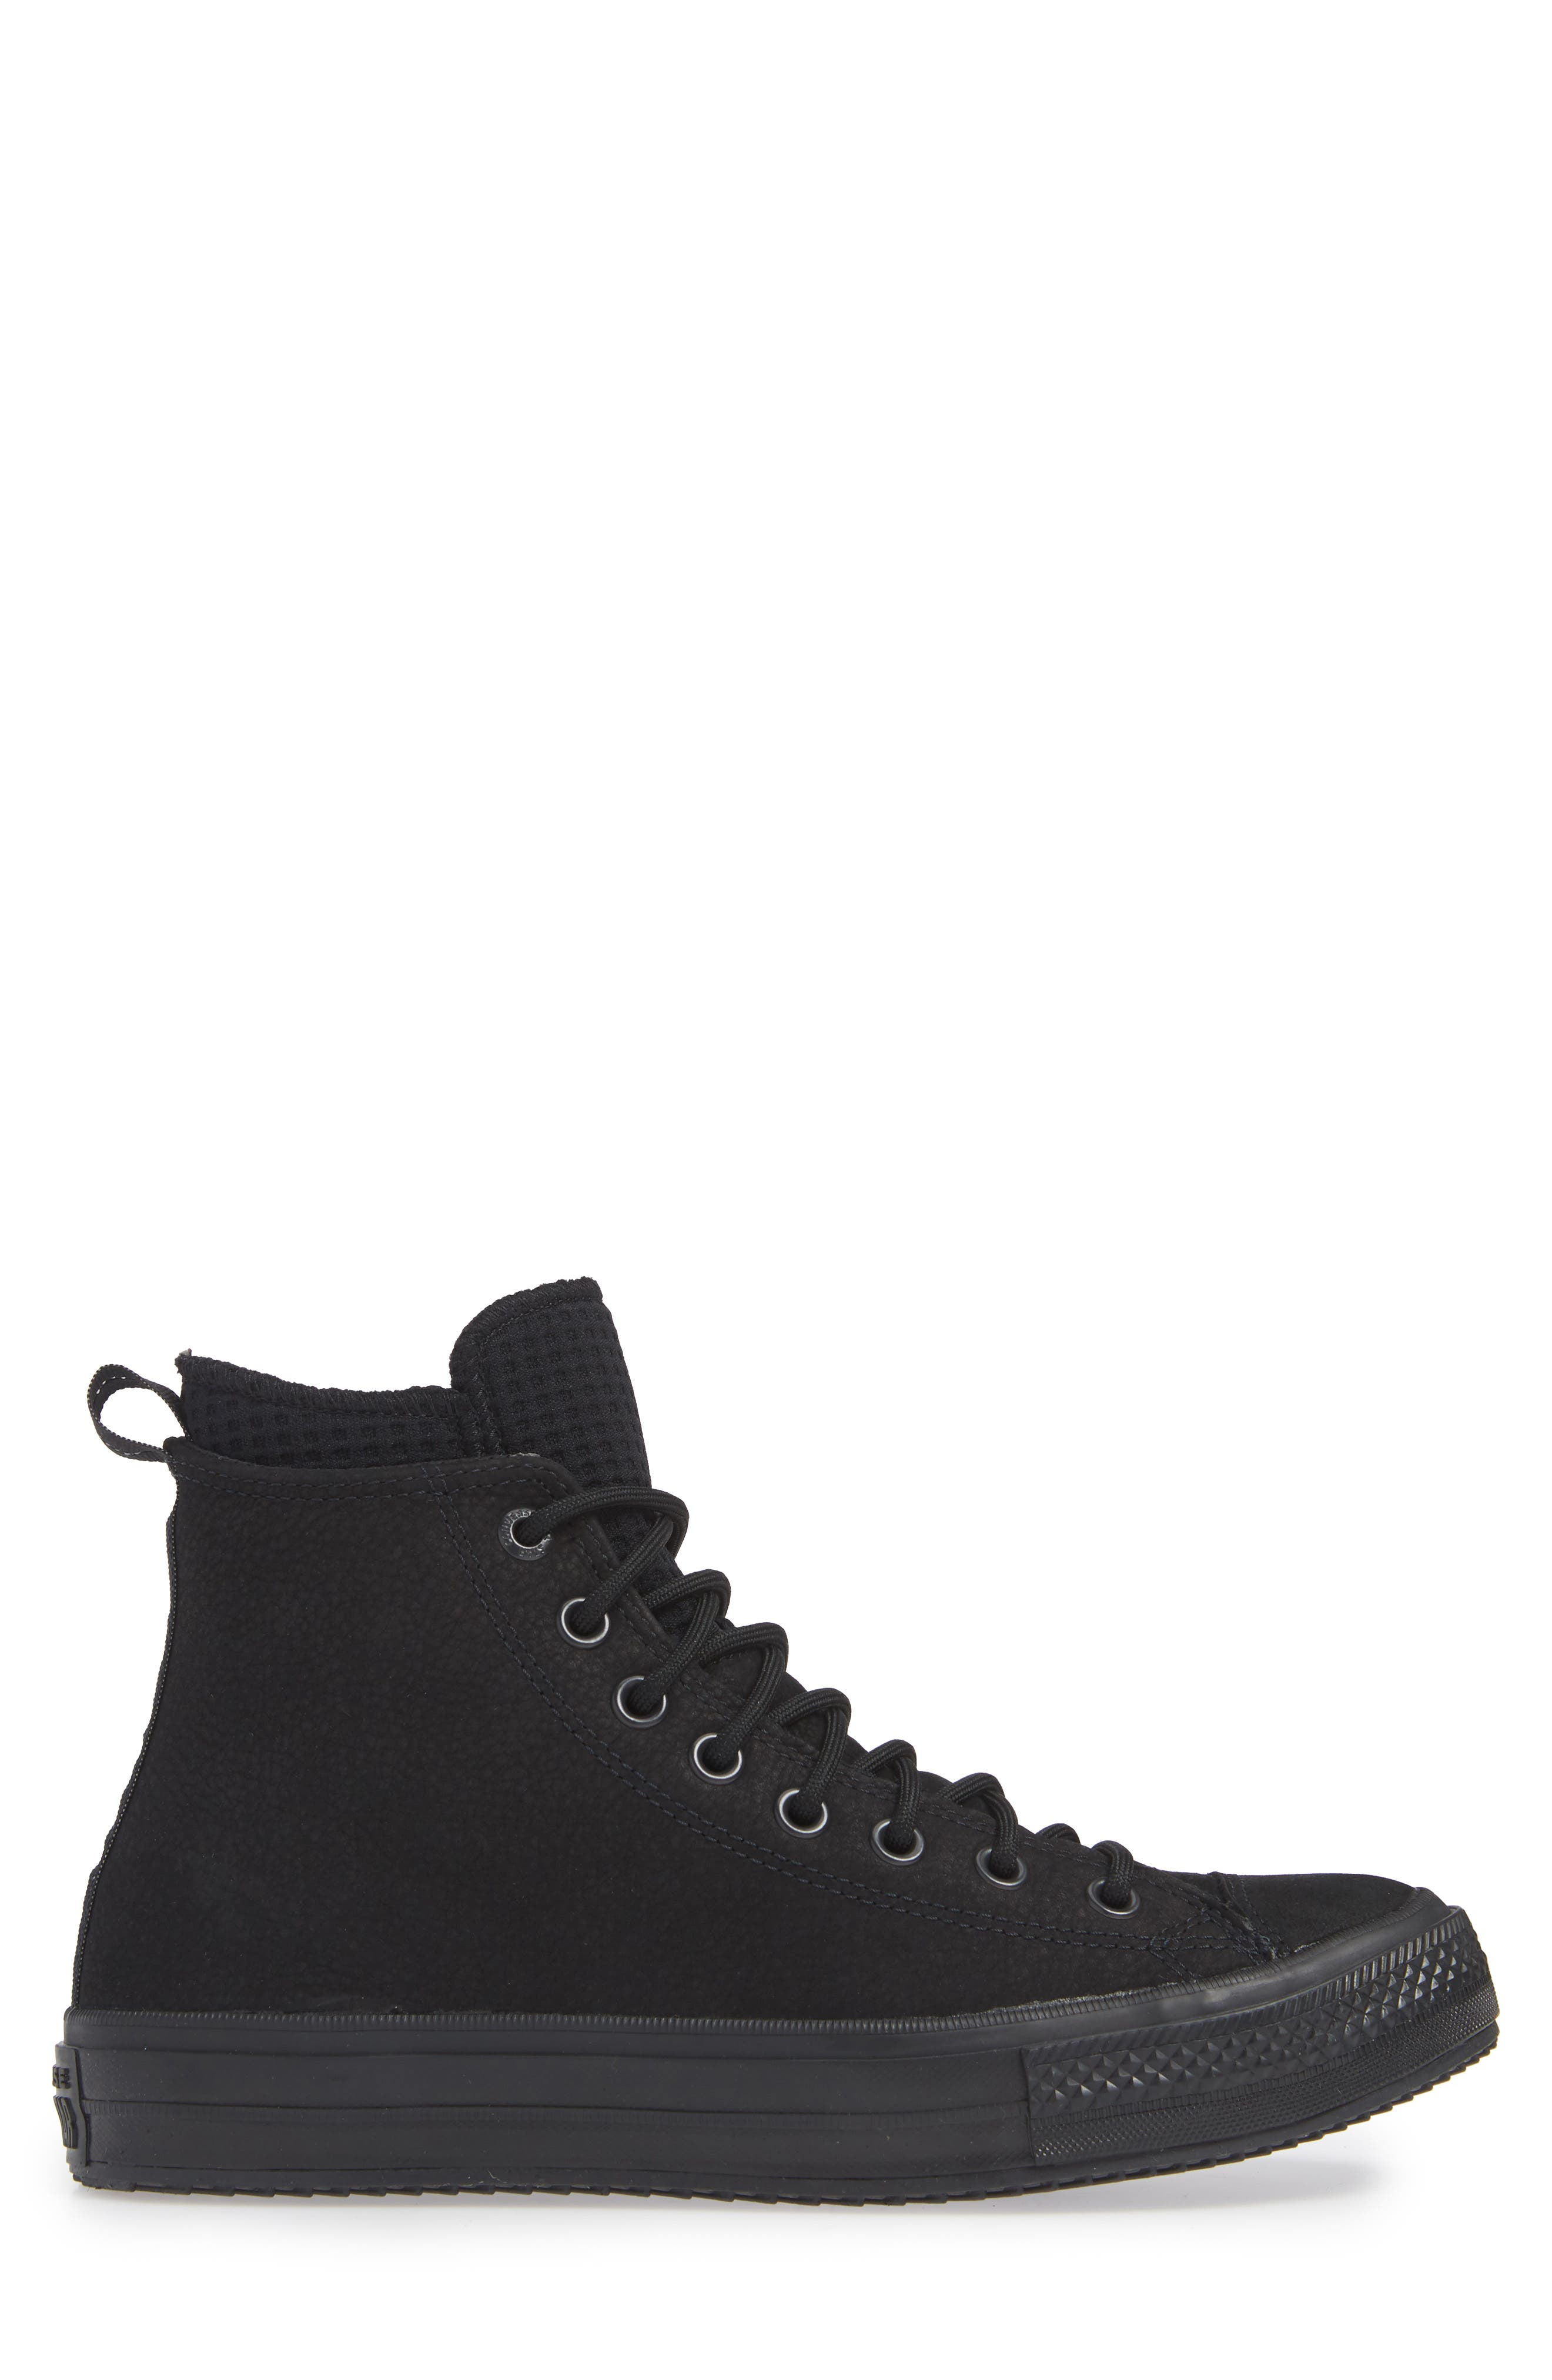 Chuck Taylor<sup>®</sup> All Star<sup>®</sup> Counter Climate Waterproof Sneaker,                             Main thumbnail 1, color,                             001